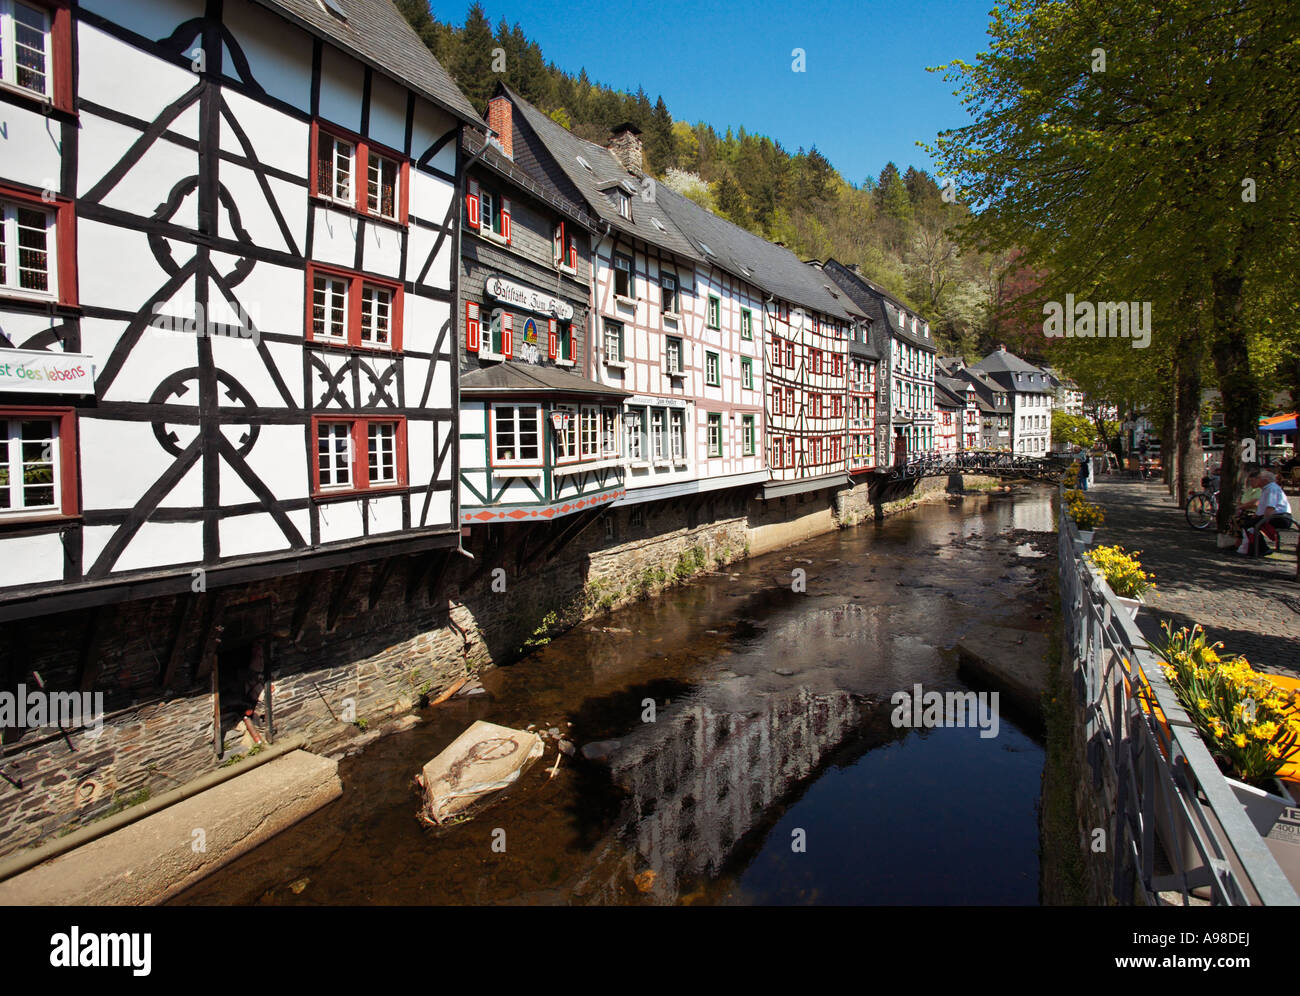 Half timbered houses on the Rur in Monschau in the Eifel Region Germany Europe - Stock Image